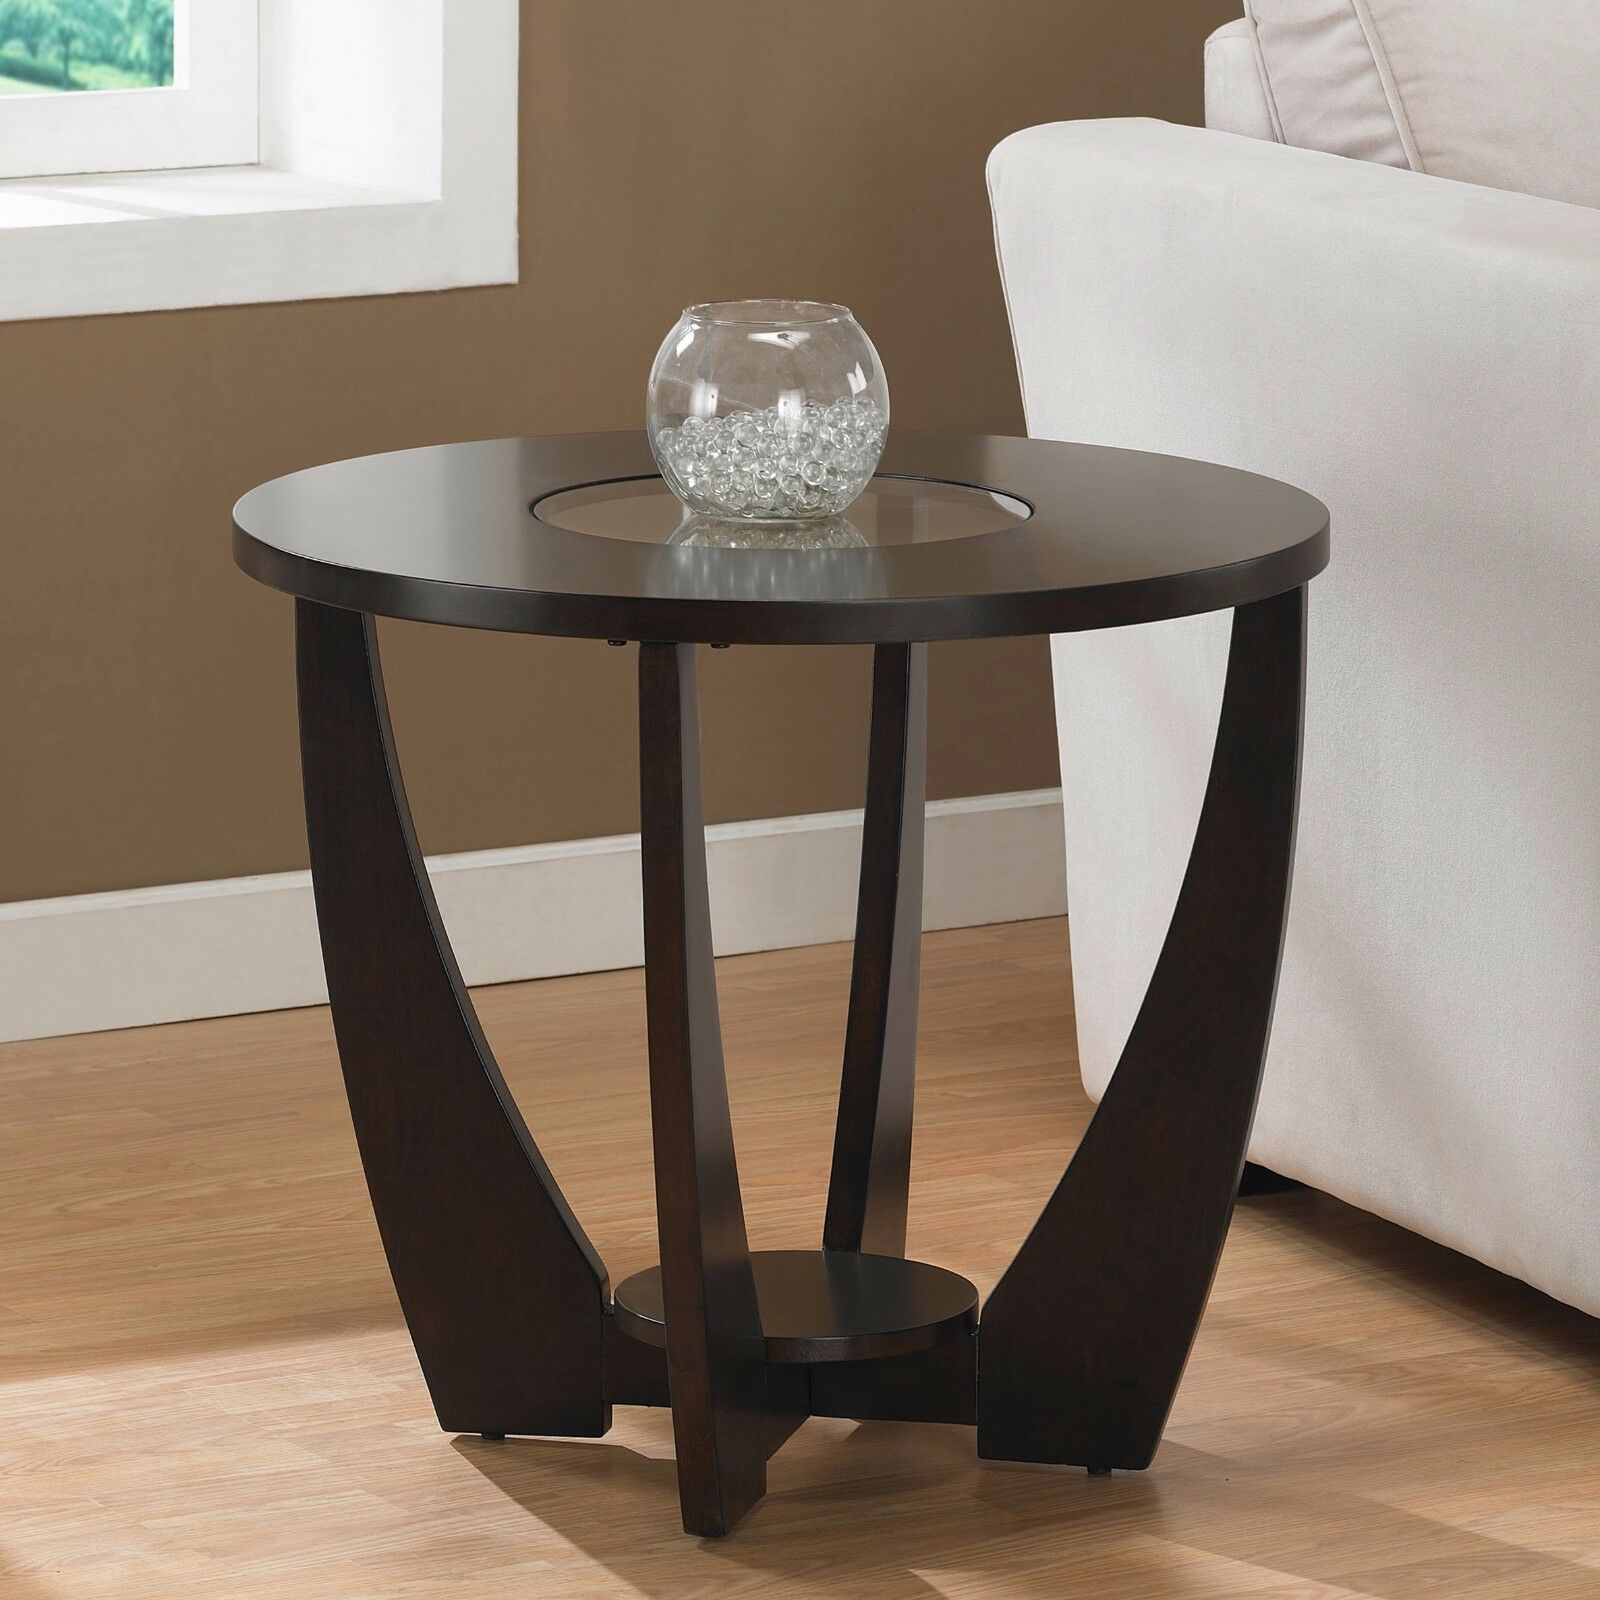 Round Glass Top End Tables Dark Brown Round End Table With Glass Top Living Room